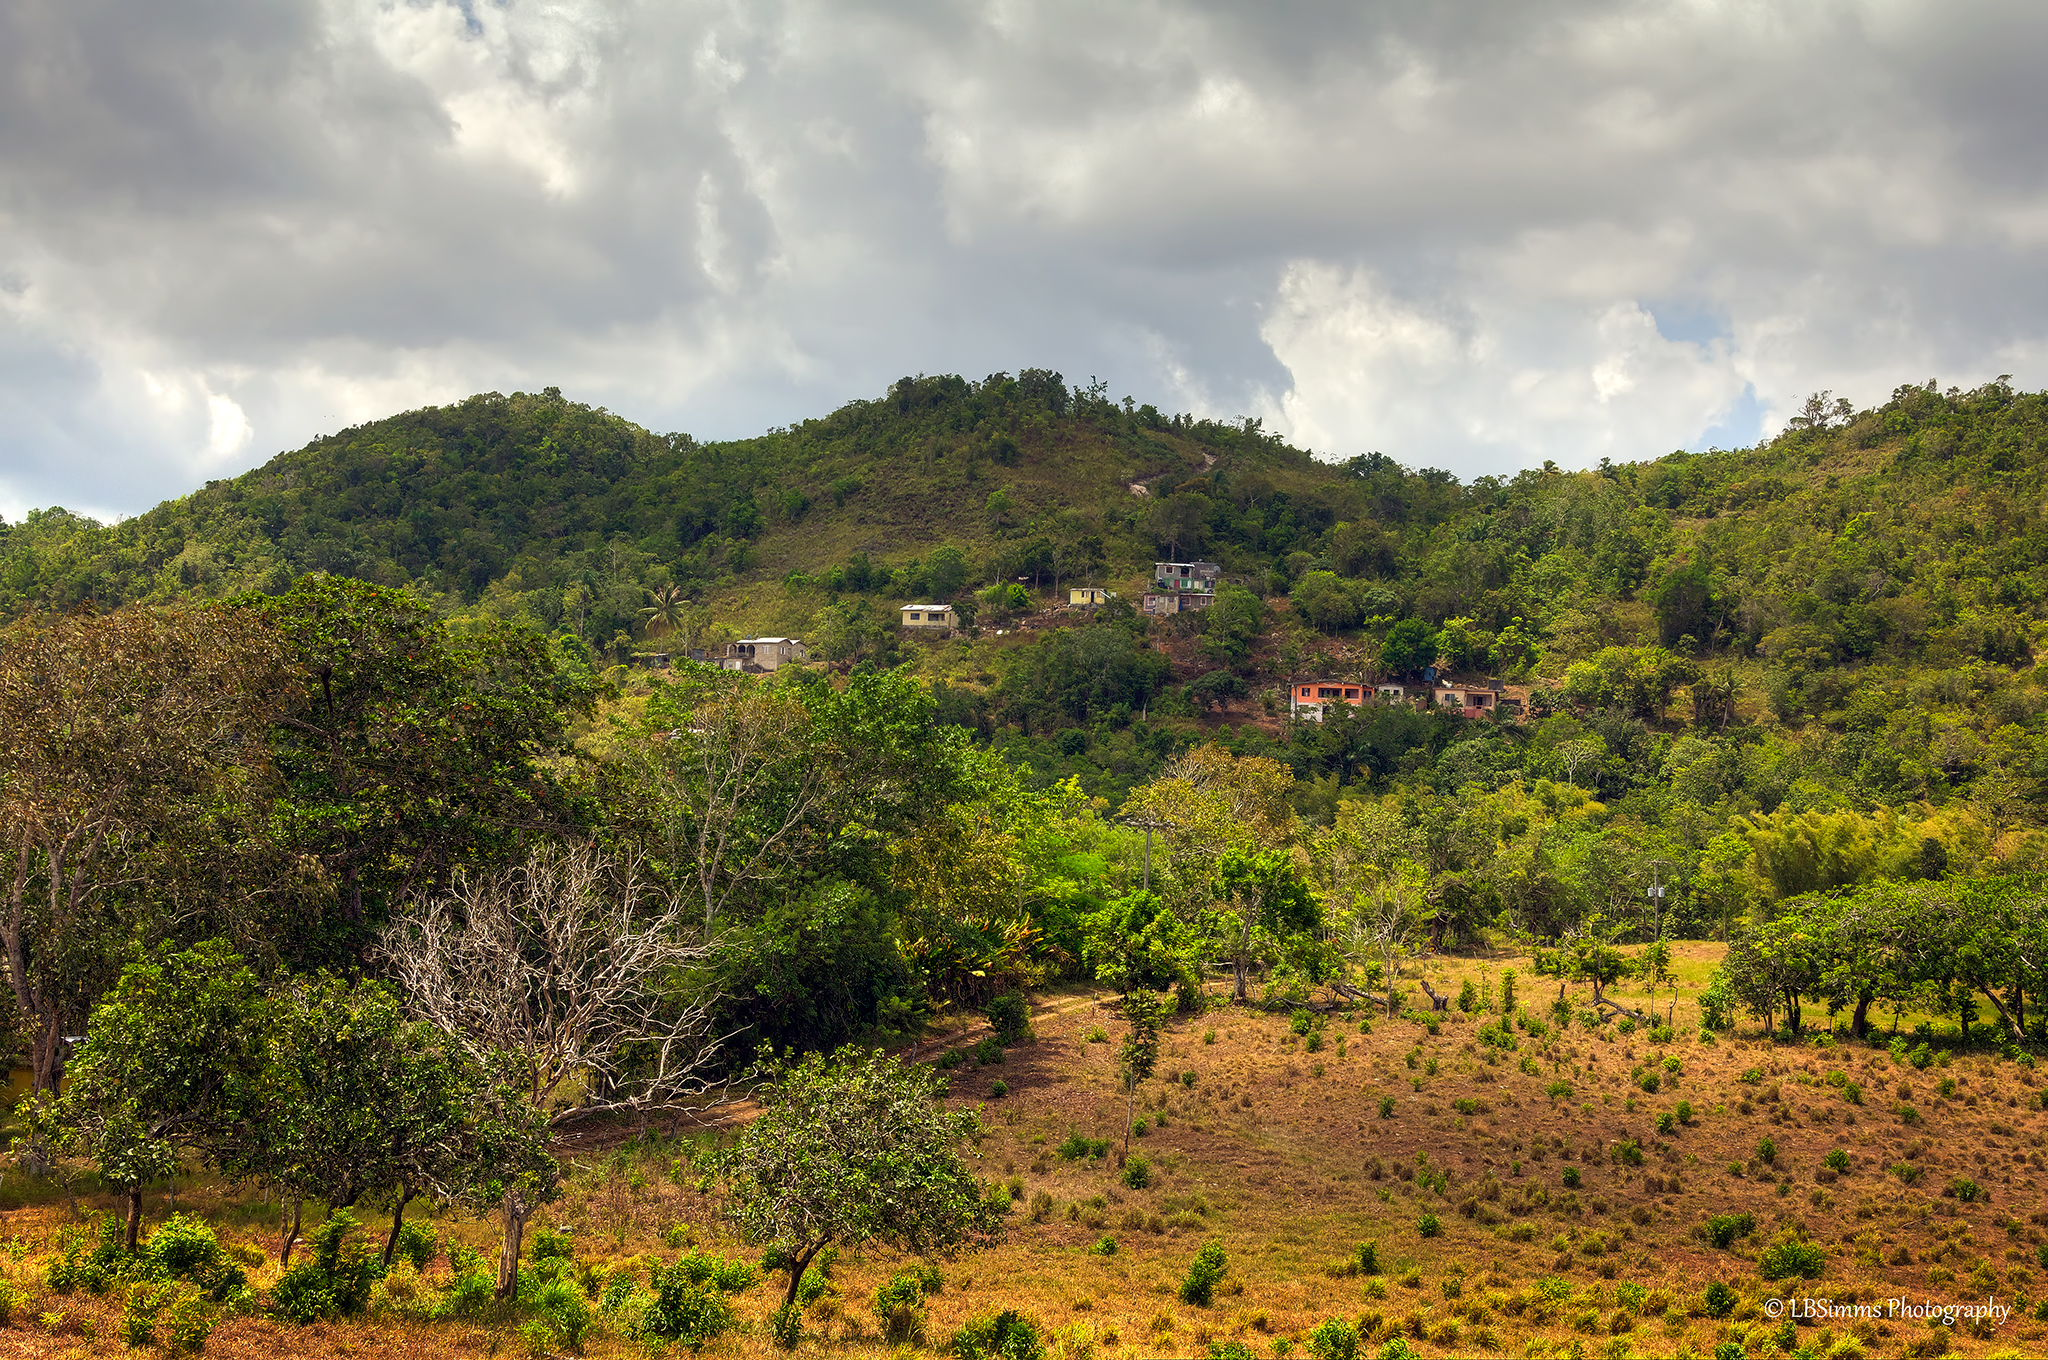 Beautiful country side of Walkerwoods in St Ann, Jamaica.